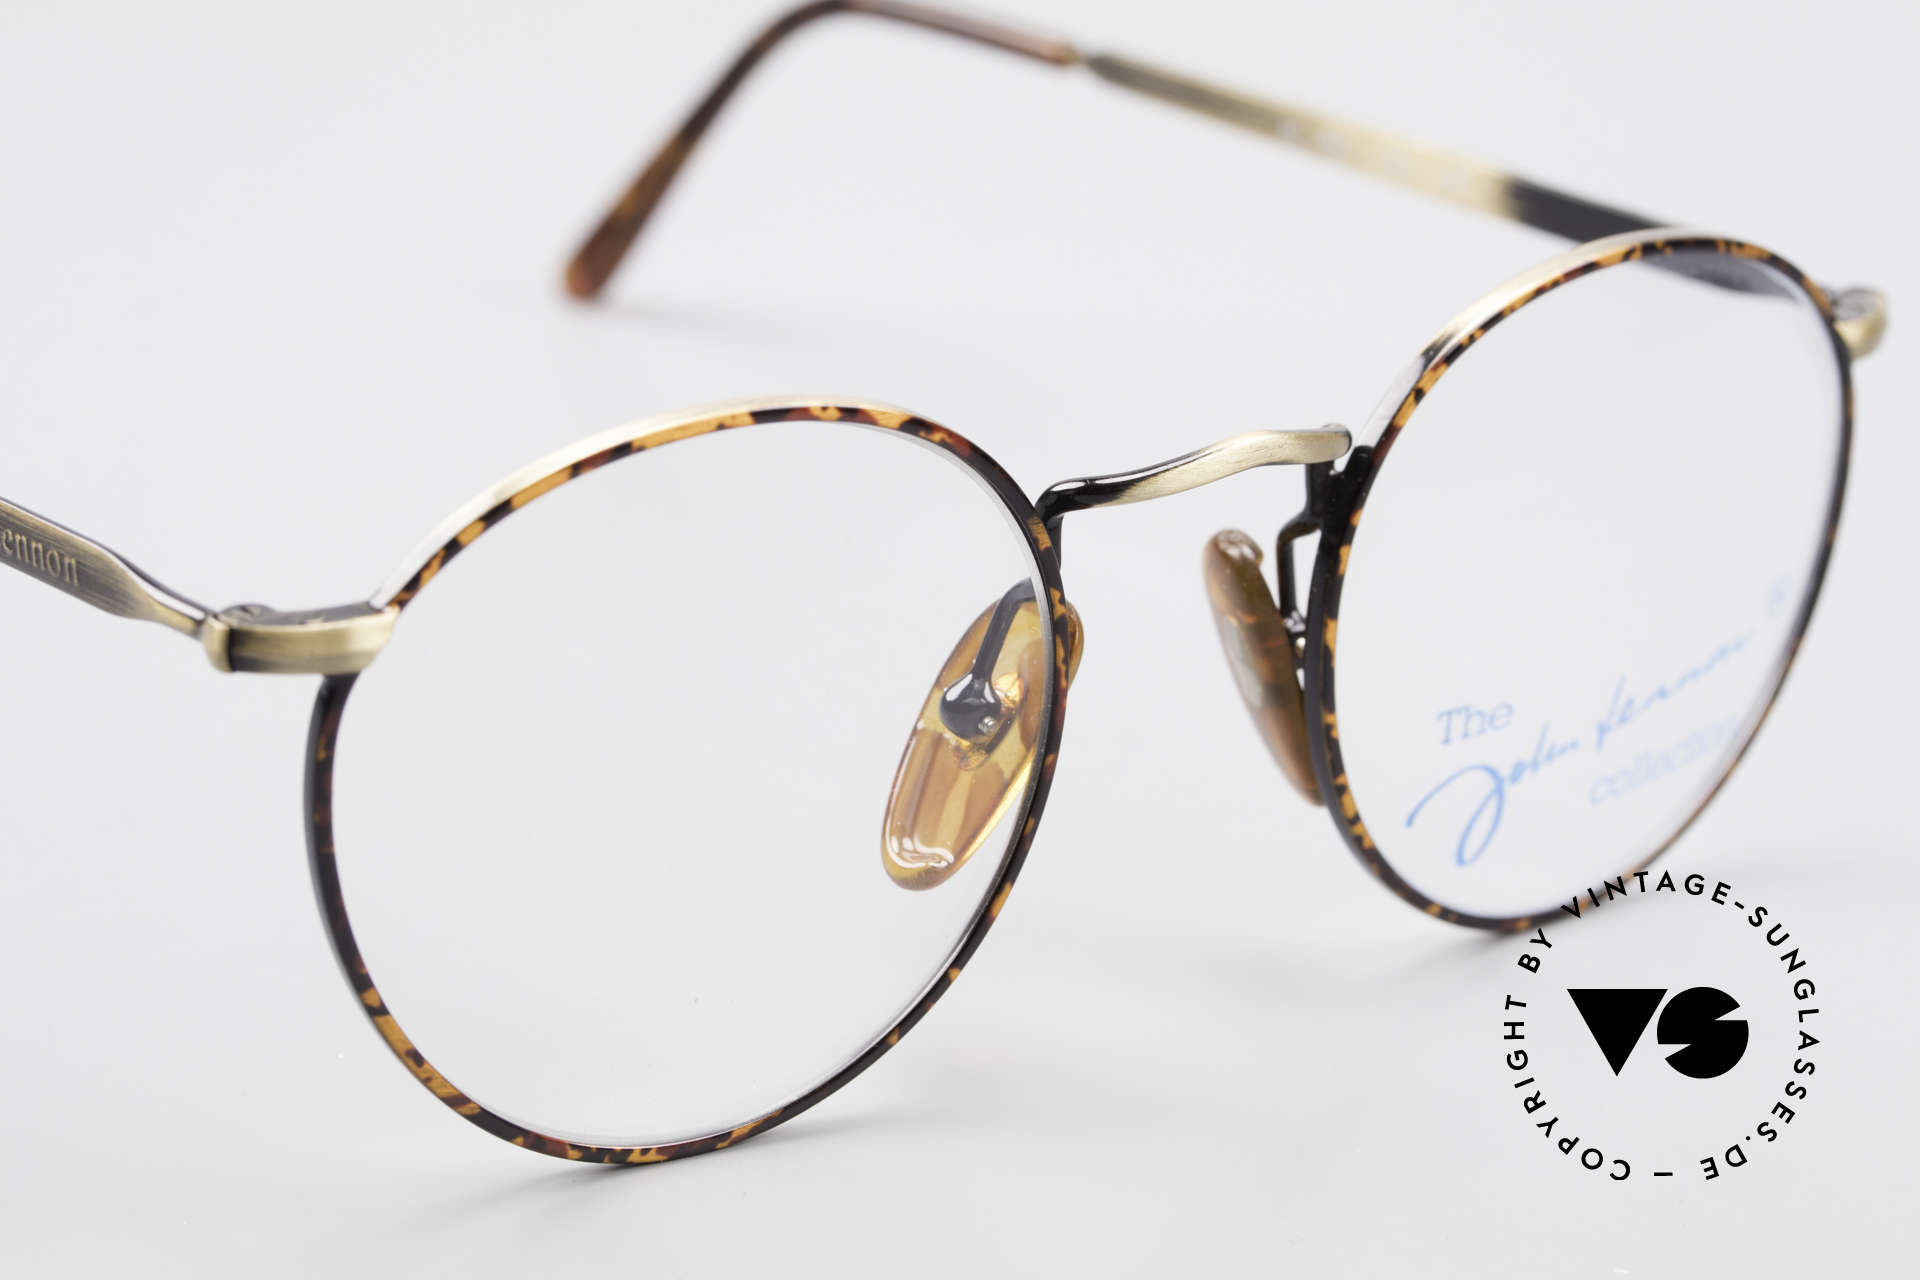 John Lennon - The Dreamer Very Small Vintage Glasses, NO RETRO PANTO EYEGLASSES; but a rare old ORIGINAL, Made for Men and Women